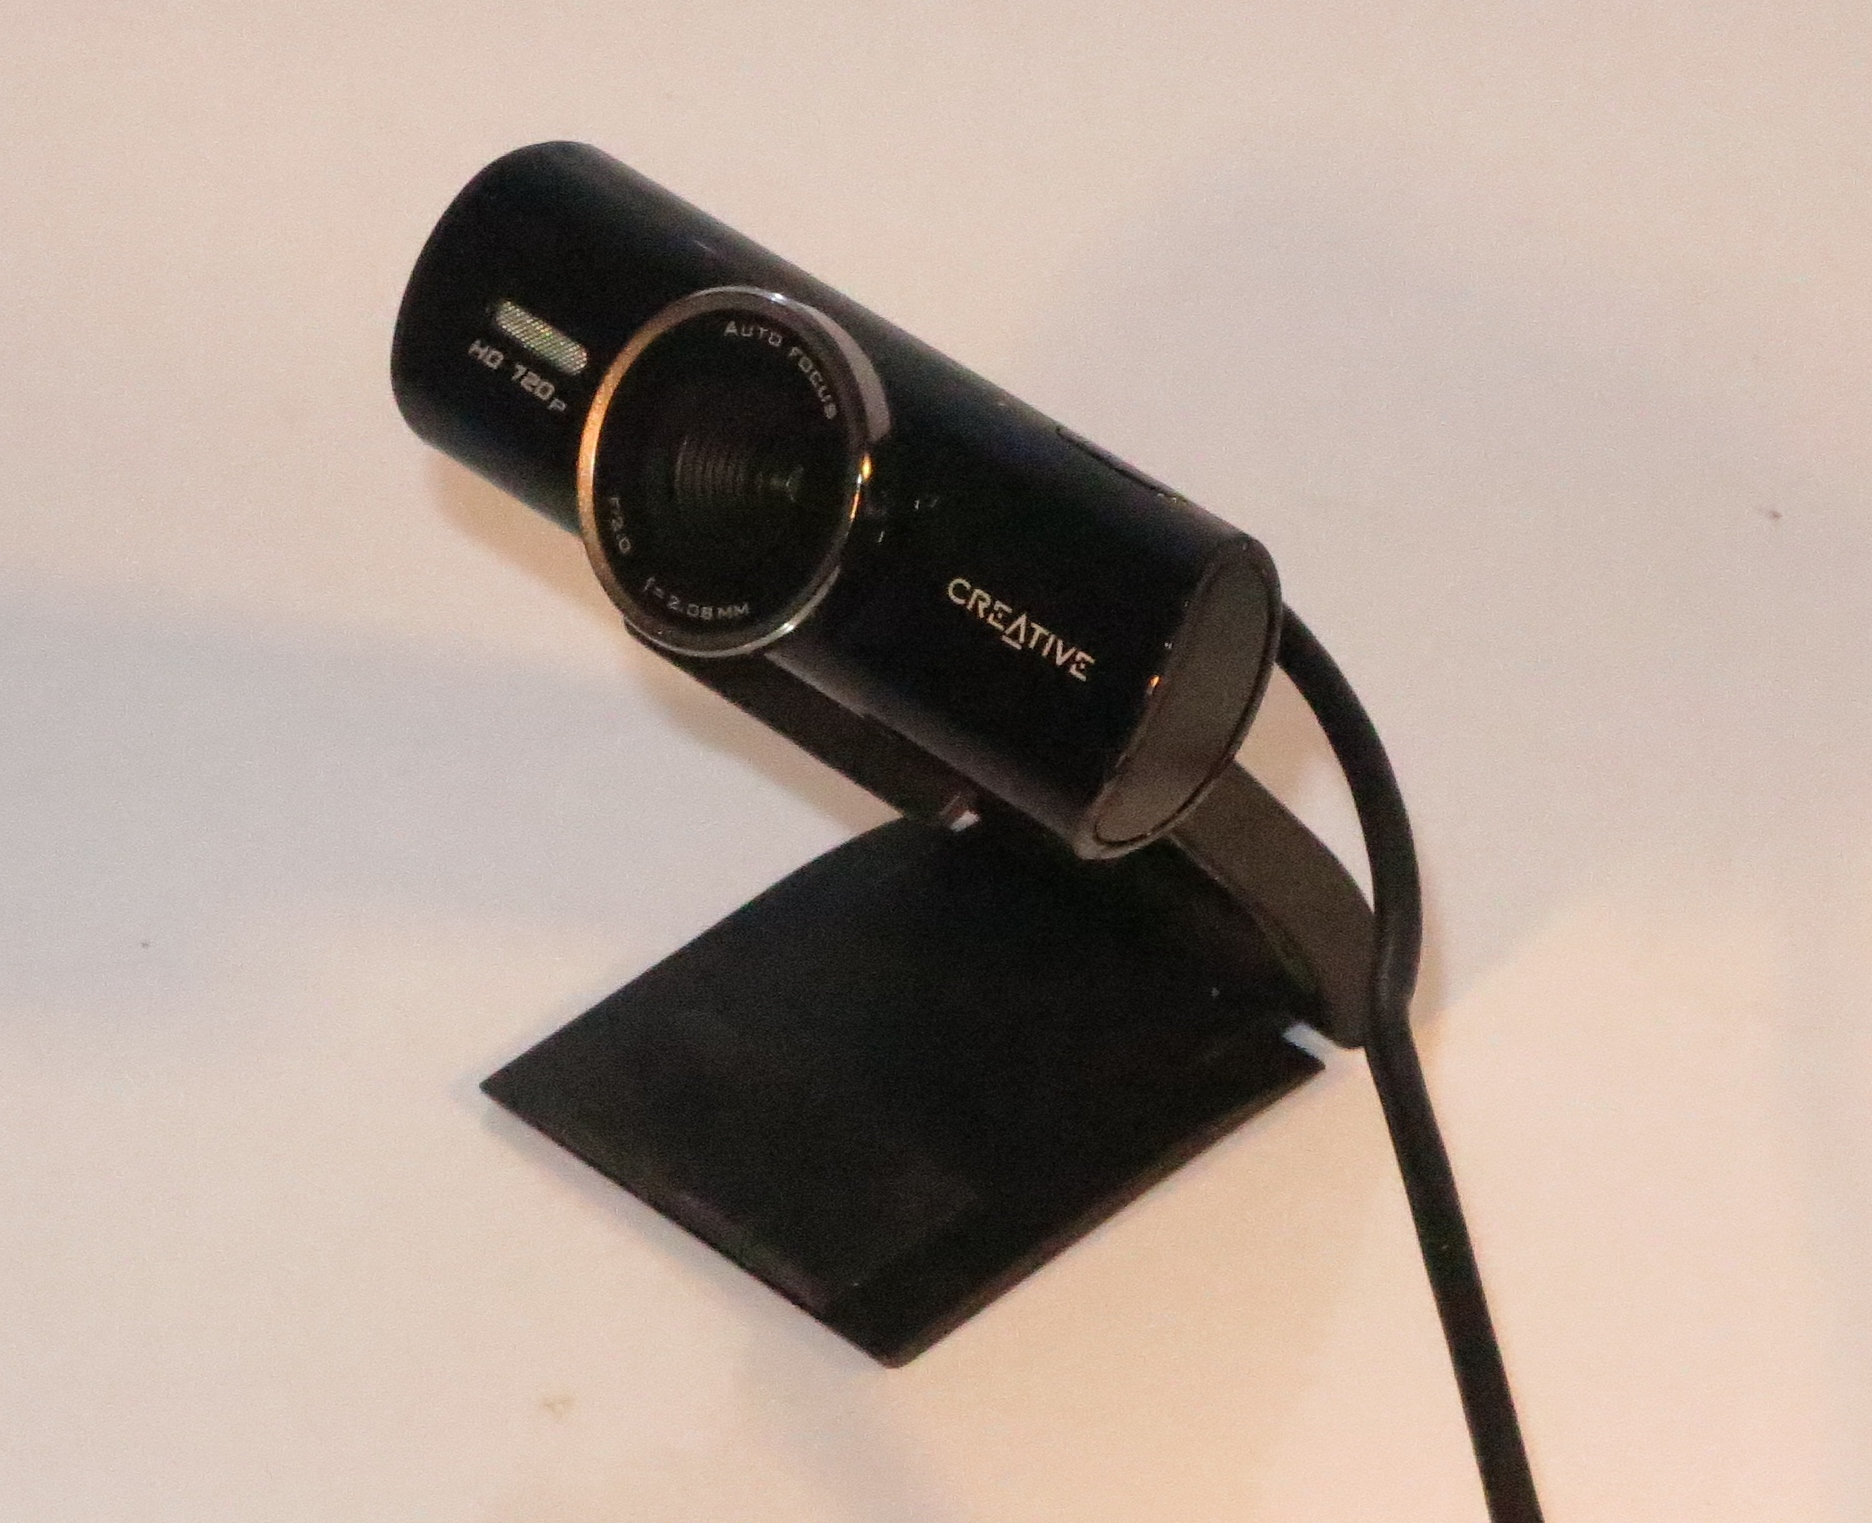 Creative Labs LiveCam Connect HD Webcam on base